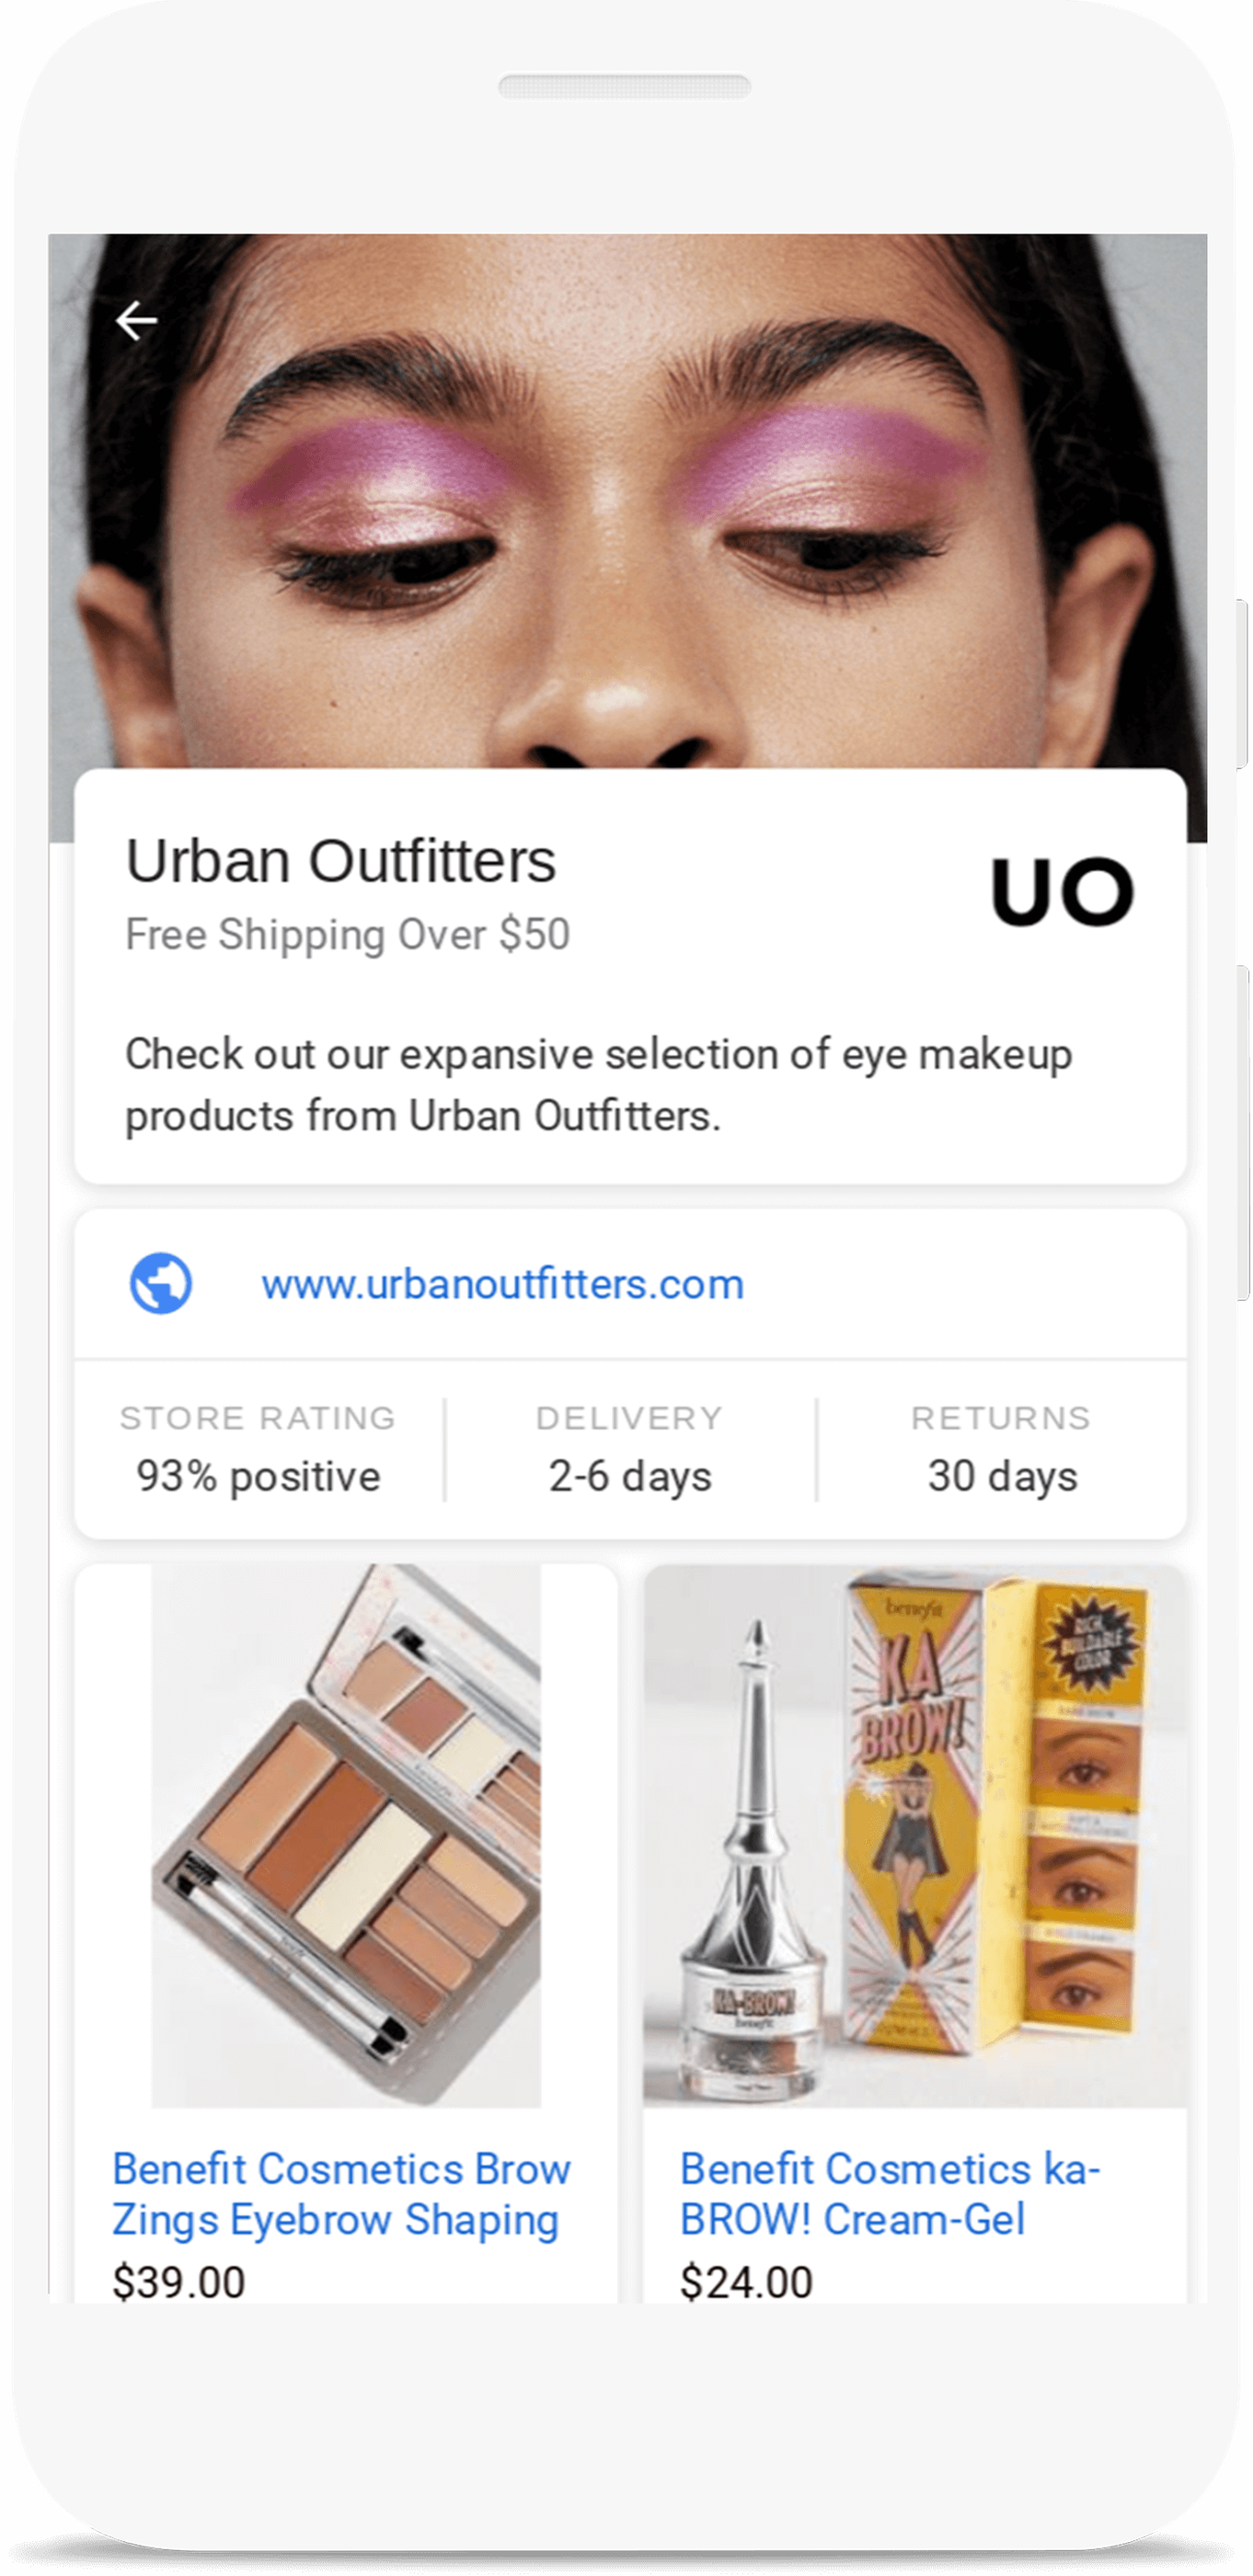 Urban Outfitters Showcase Shopping ad for beauty